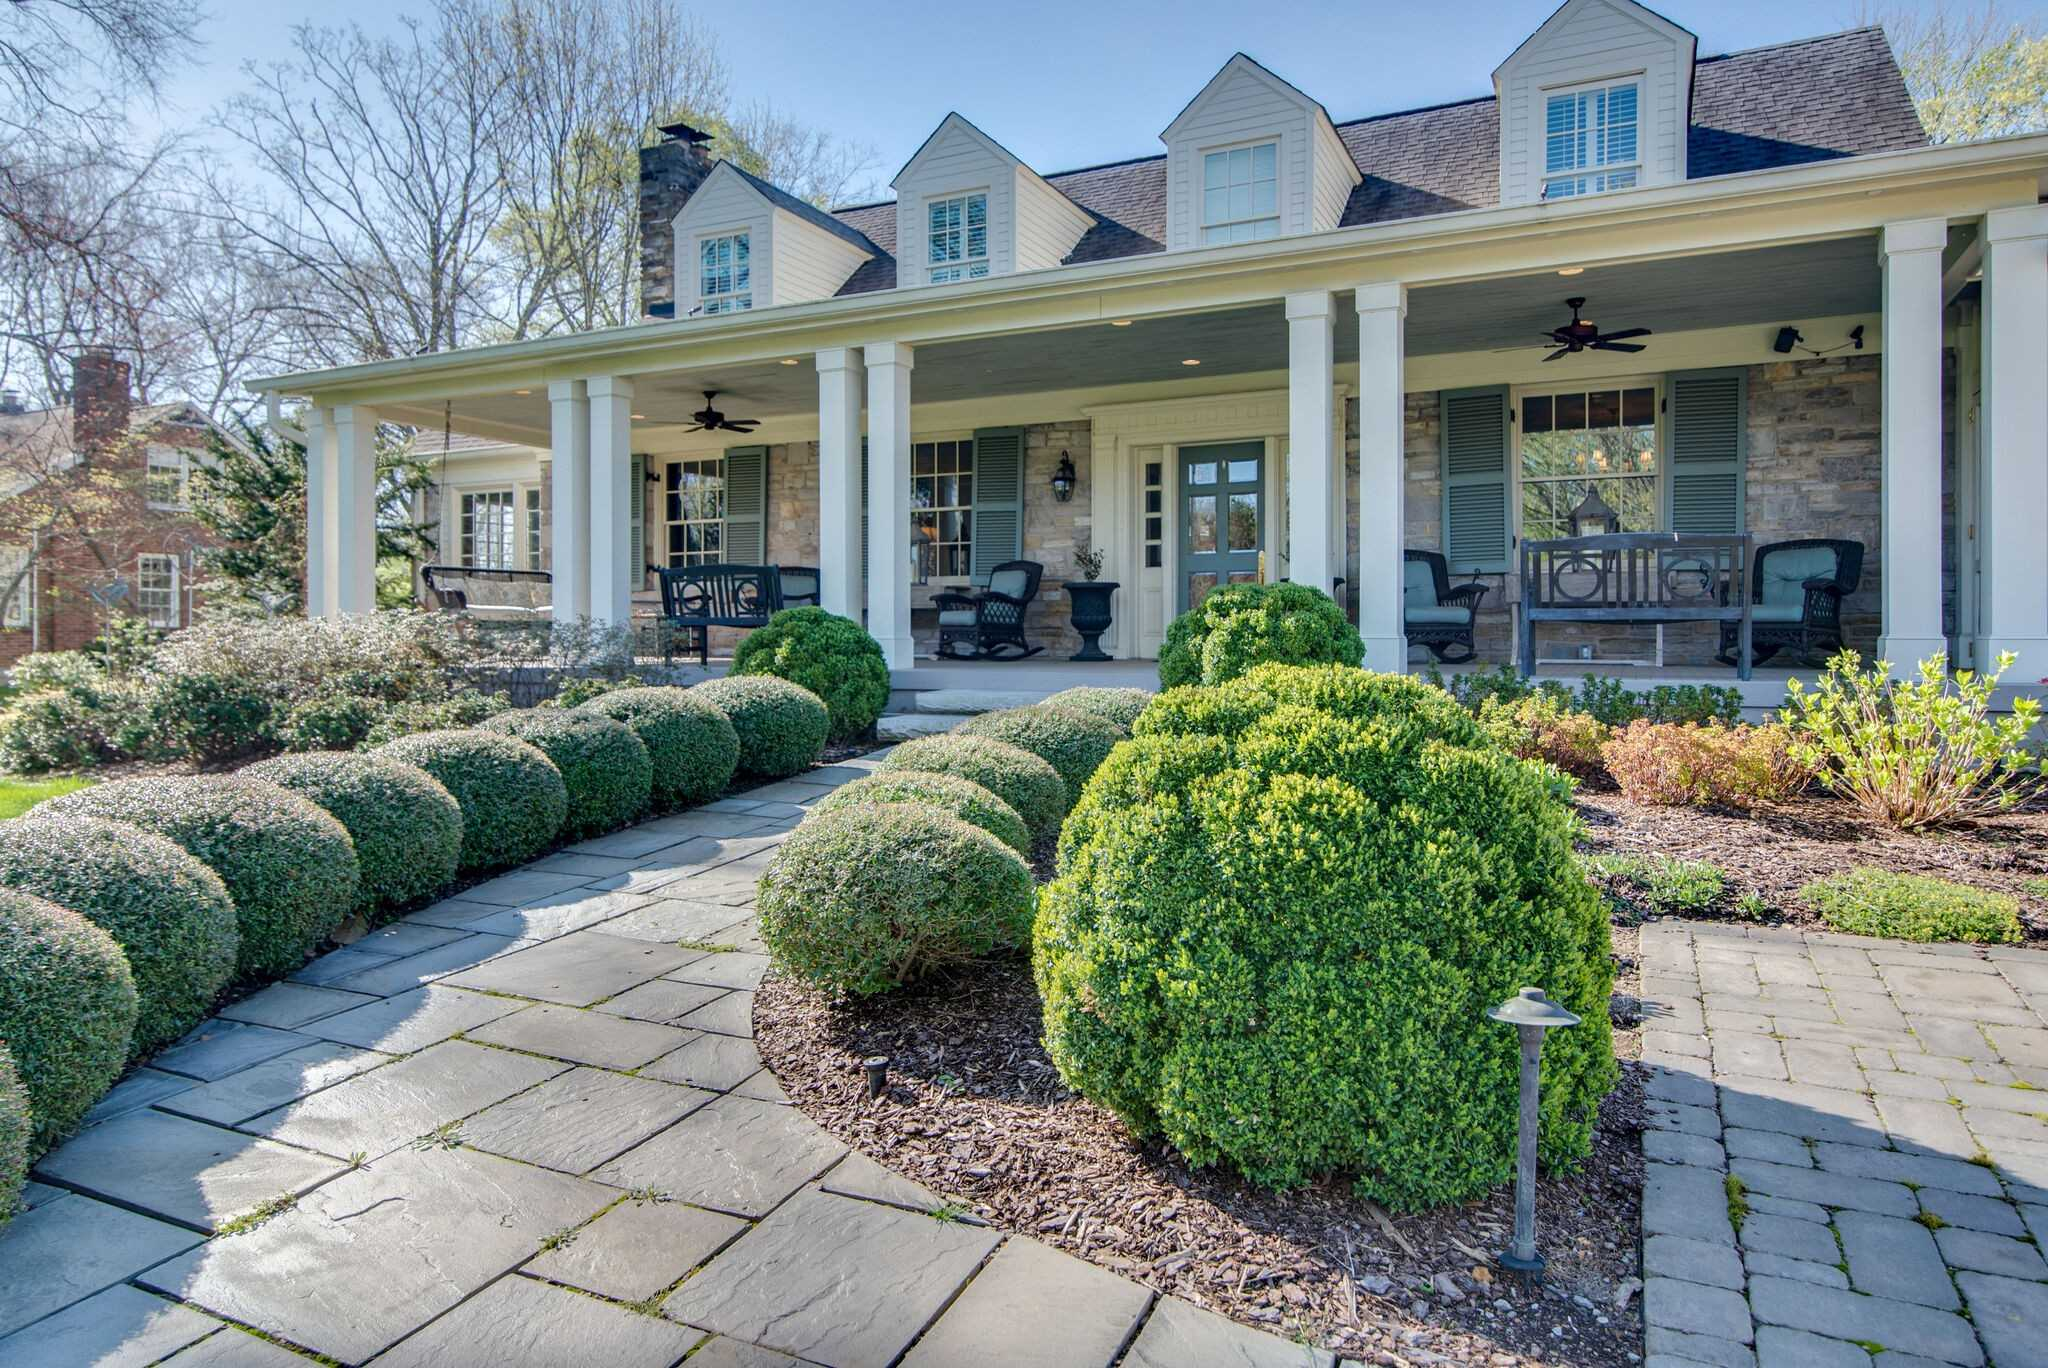 $4,600,000 - 6Br/6Ba -  for Sale in Golf Club/hampton, Nashville